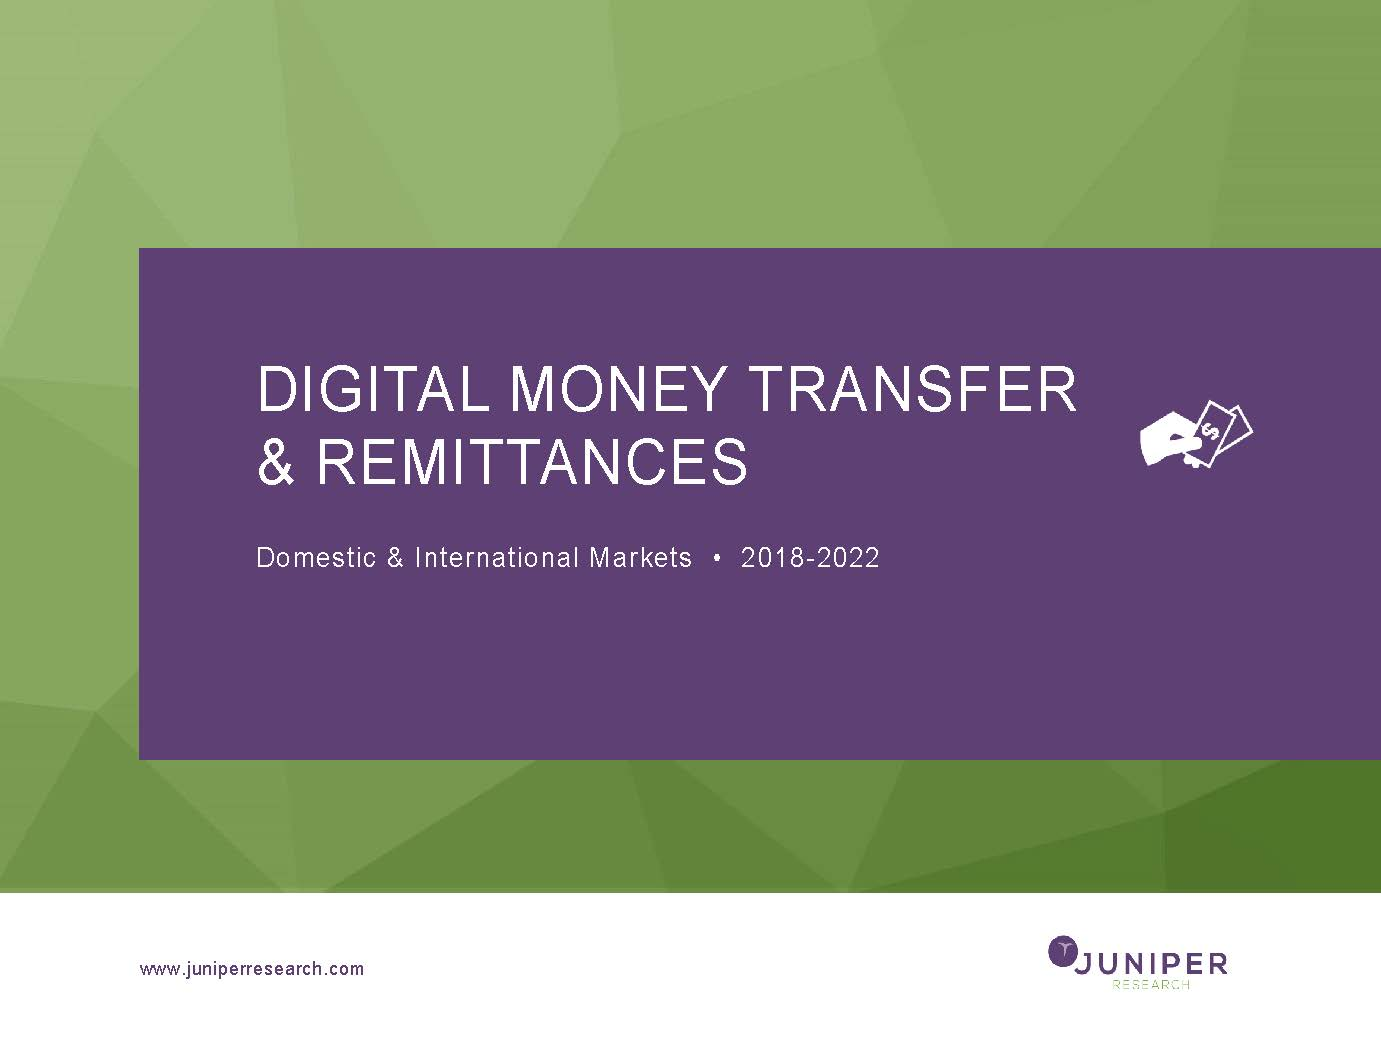 Digital Money Transfer & Remittances